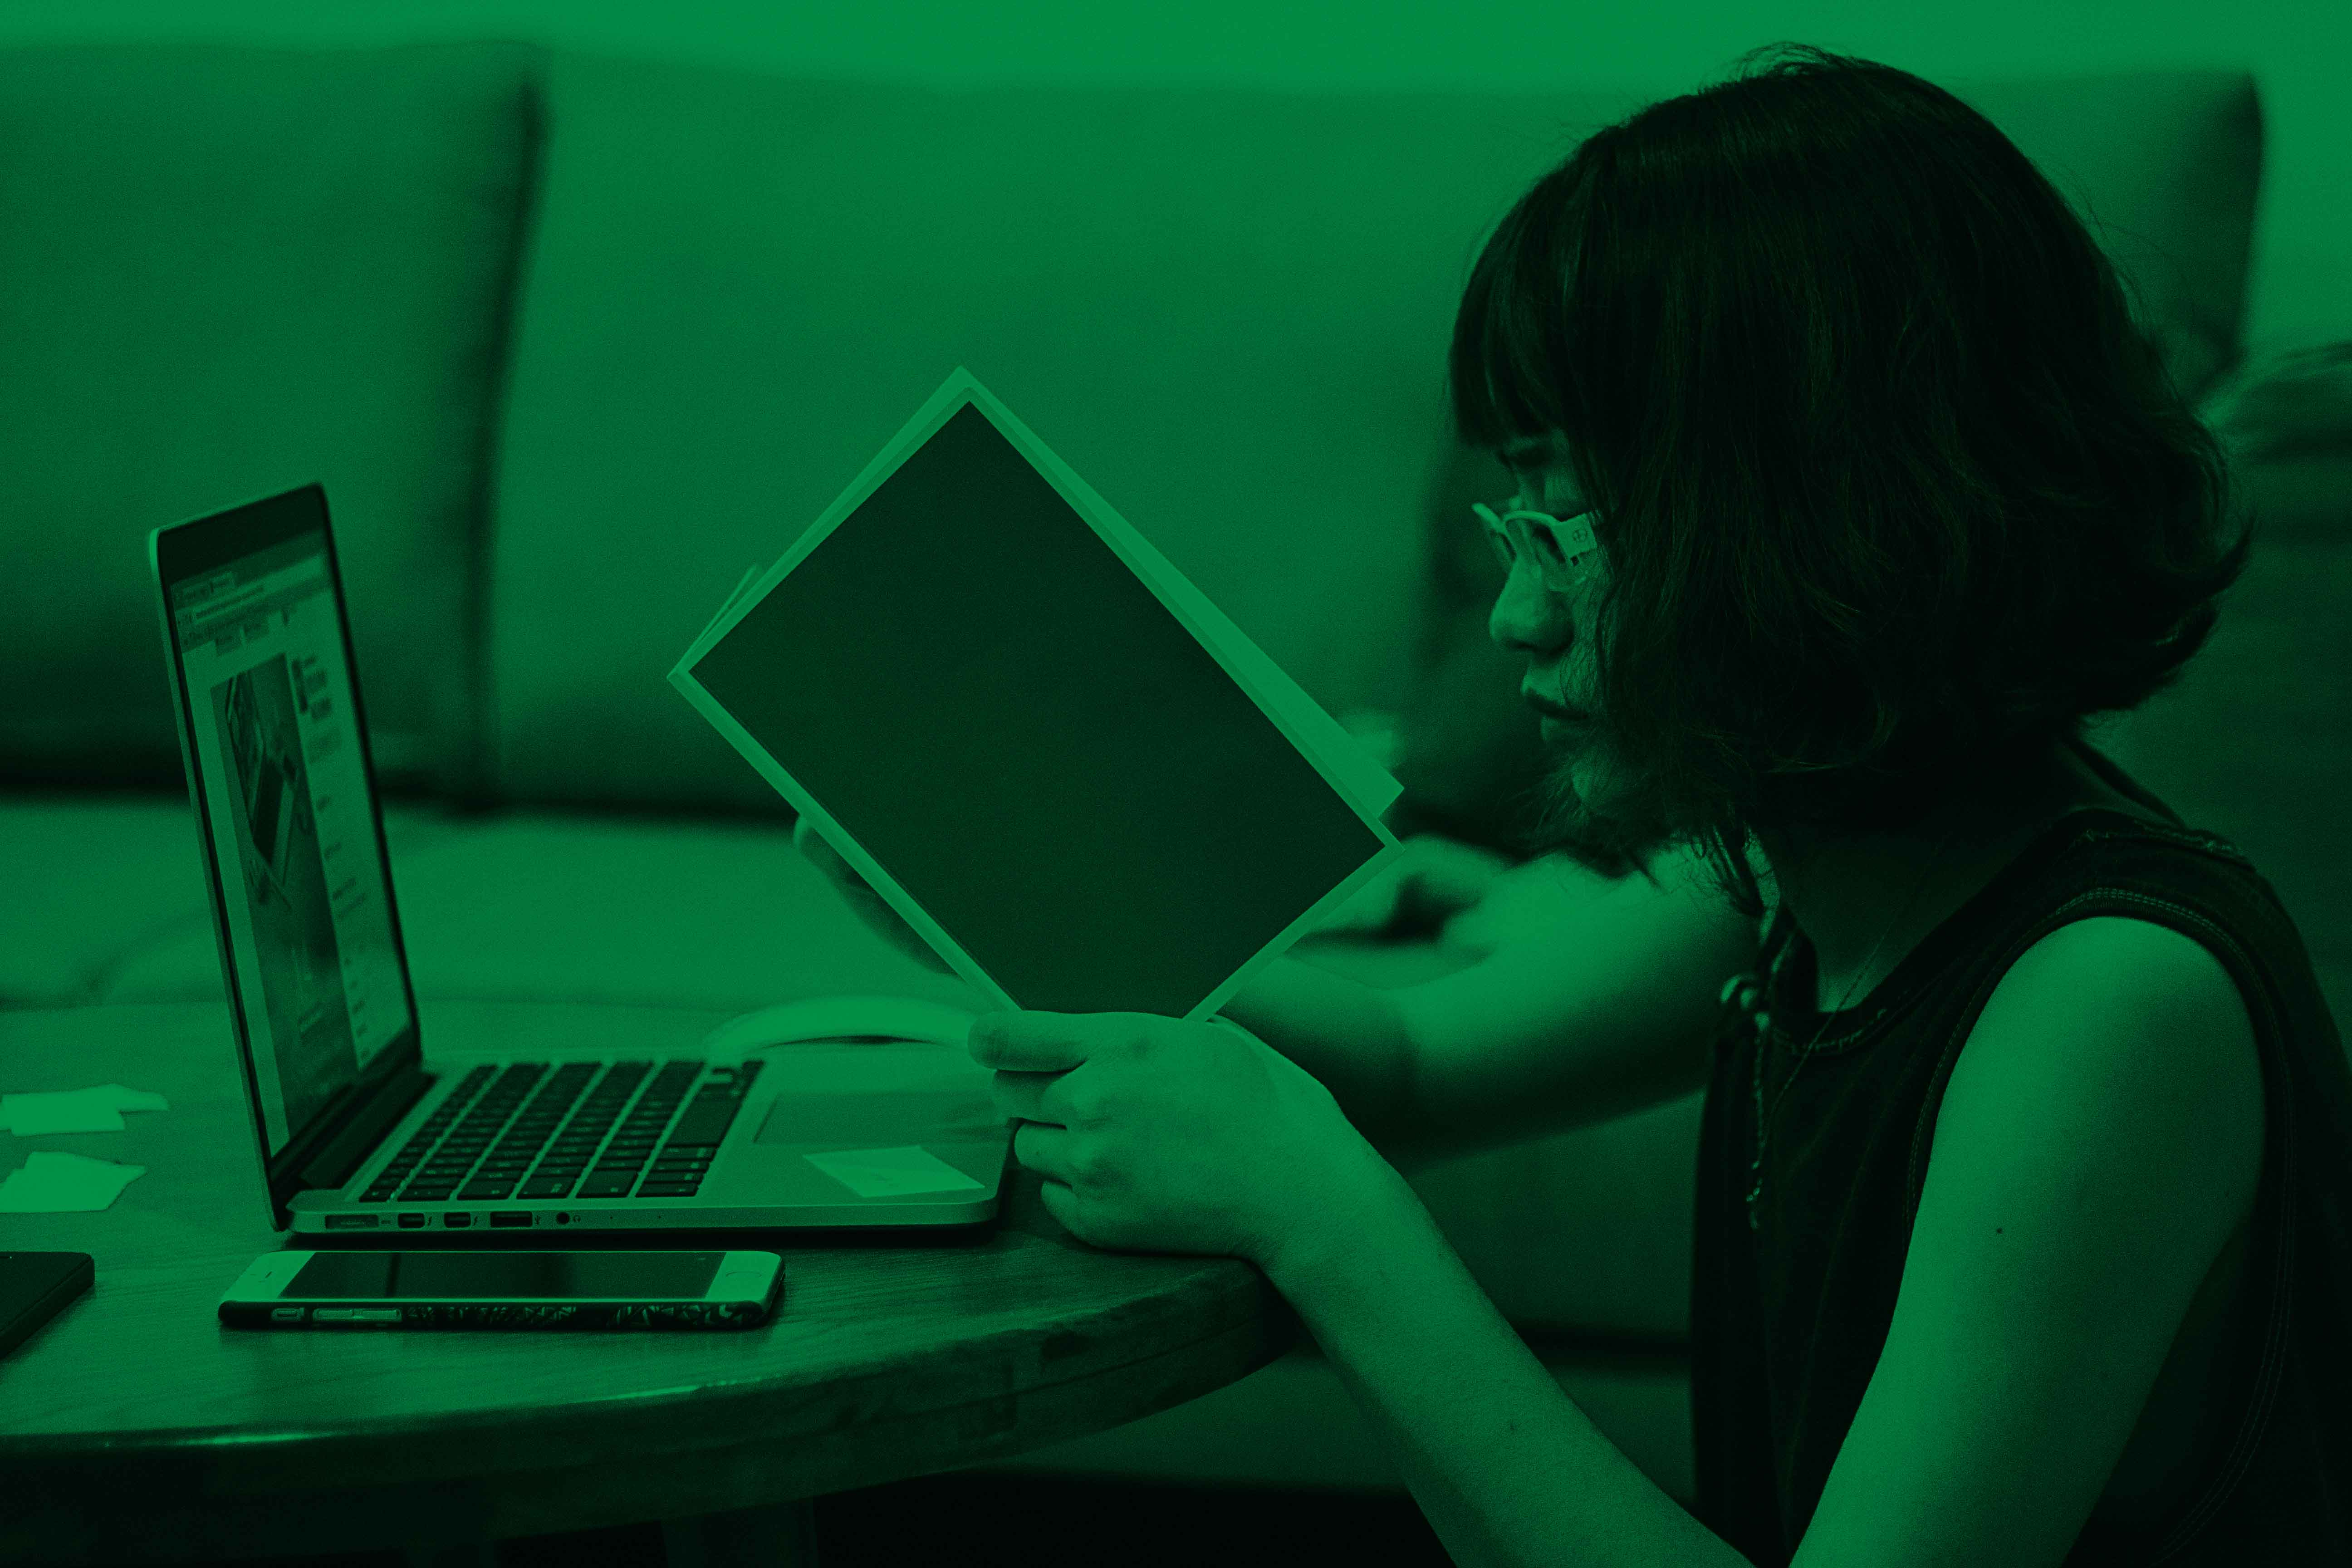 woman book laptop_green.jpg